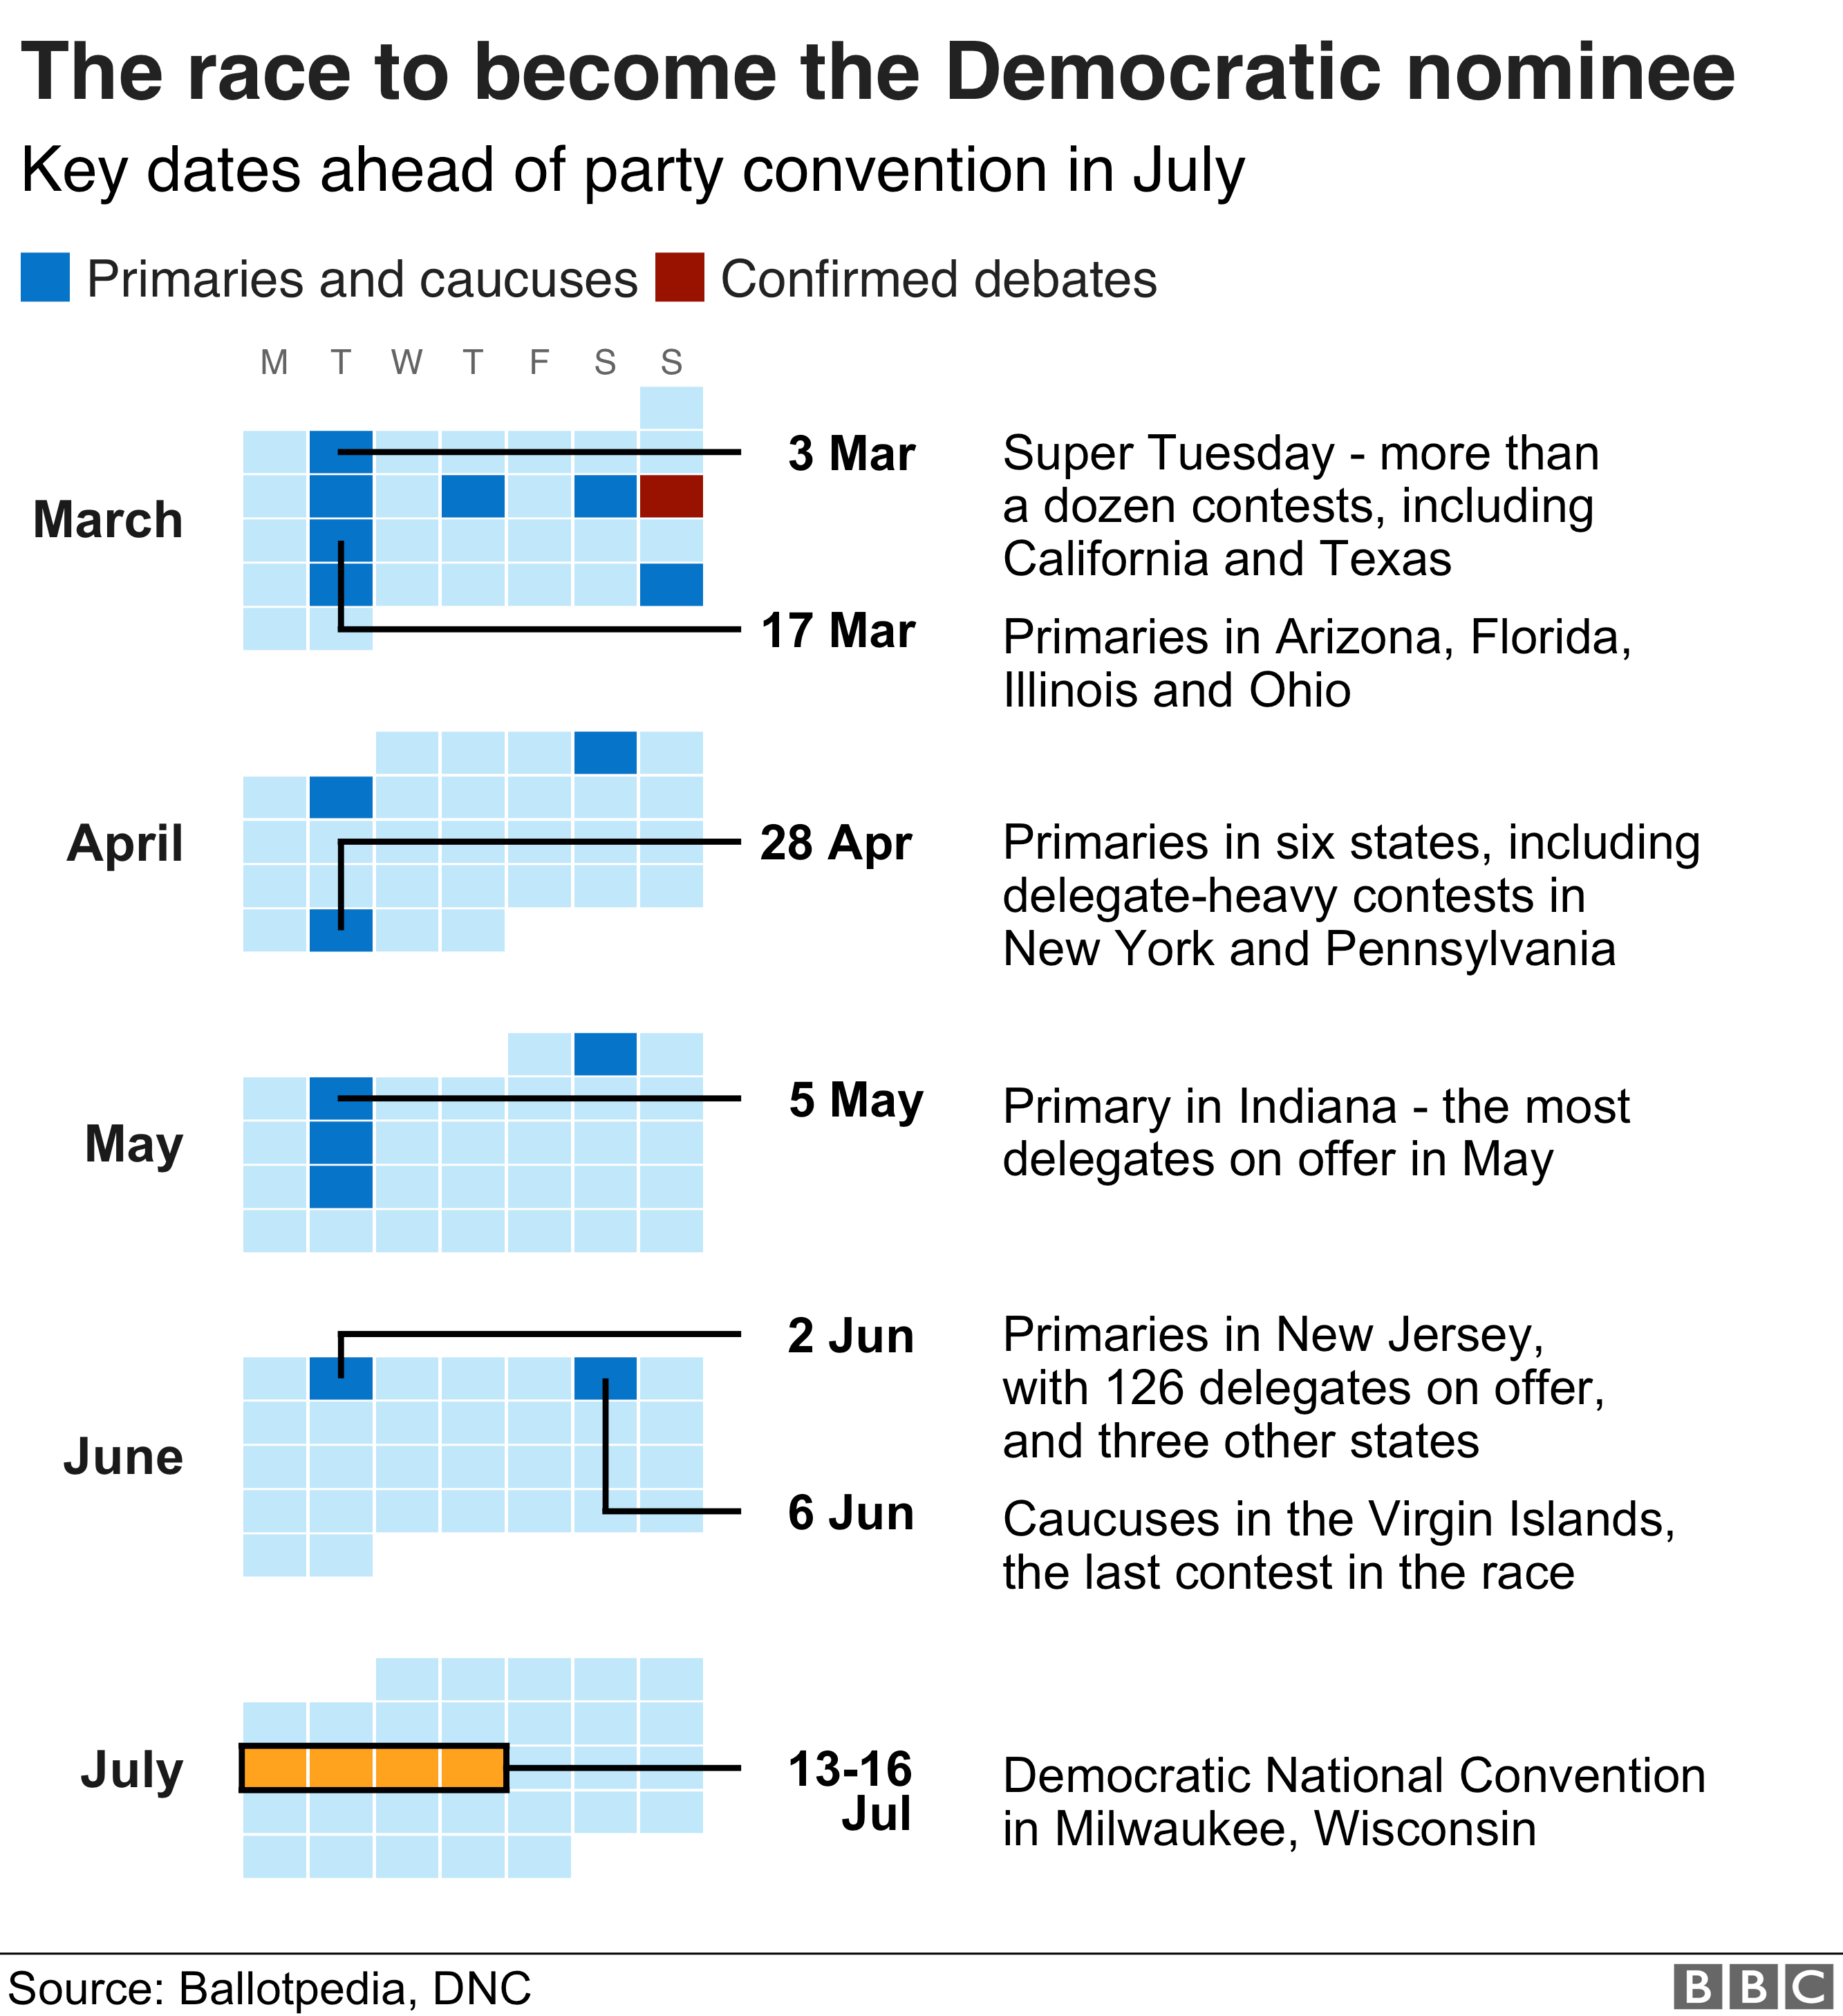 Calendar showing key dates in the race to become the Democratic nominee